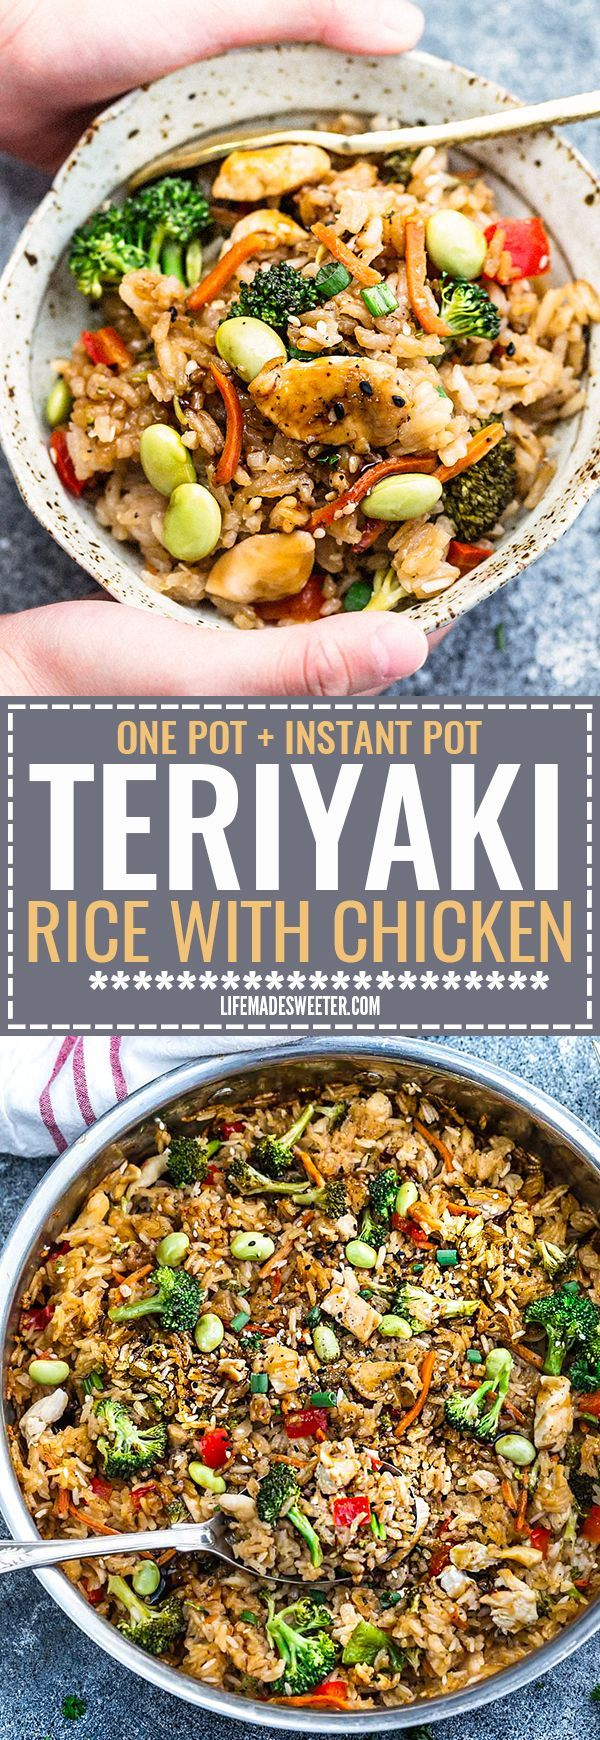 One Pot Teriyaki Rice with Chicken and Vegetables is the perfect easy weeknight meal. Best of all, everything cooks up in just ONE pan {plus bonus Instant Pot pressure cooker instructions} and has all the flavors of your favorite takeout restaurant dish. A great Sunday meal prep recipe for your work or school lunchbox or lunch bowl and way better than takeout!